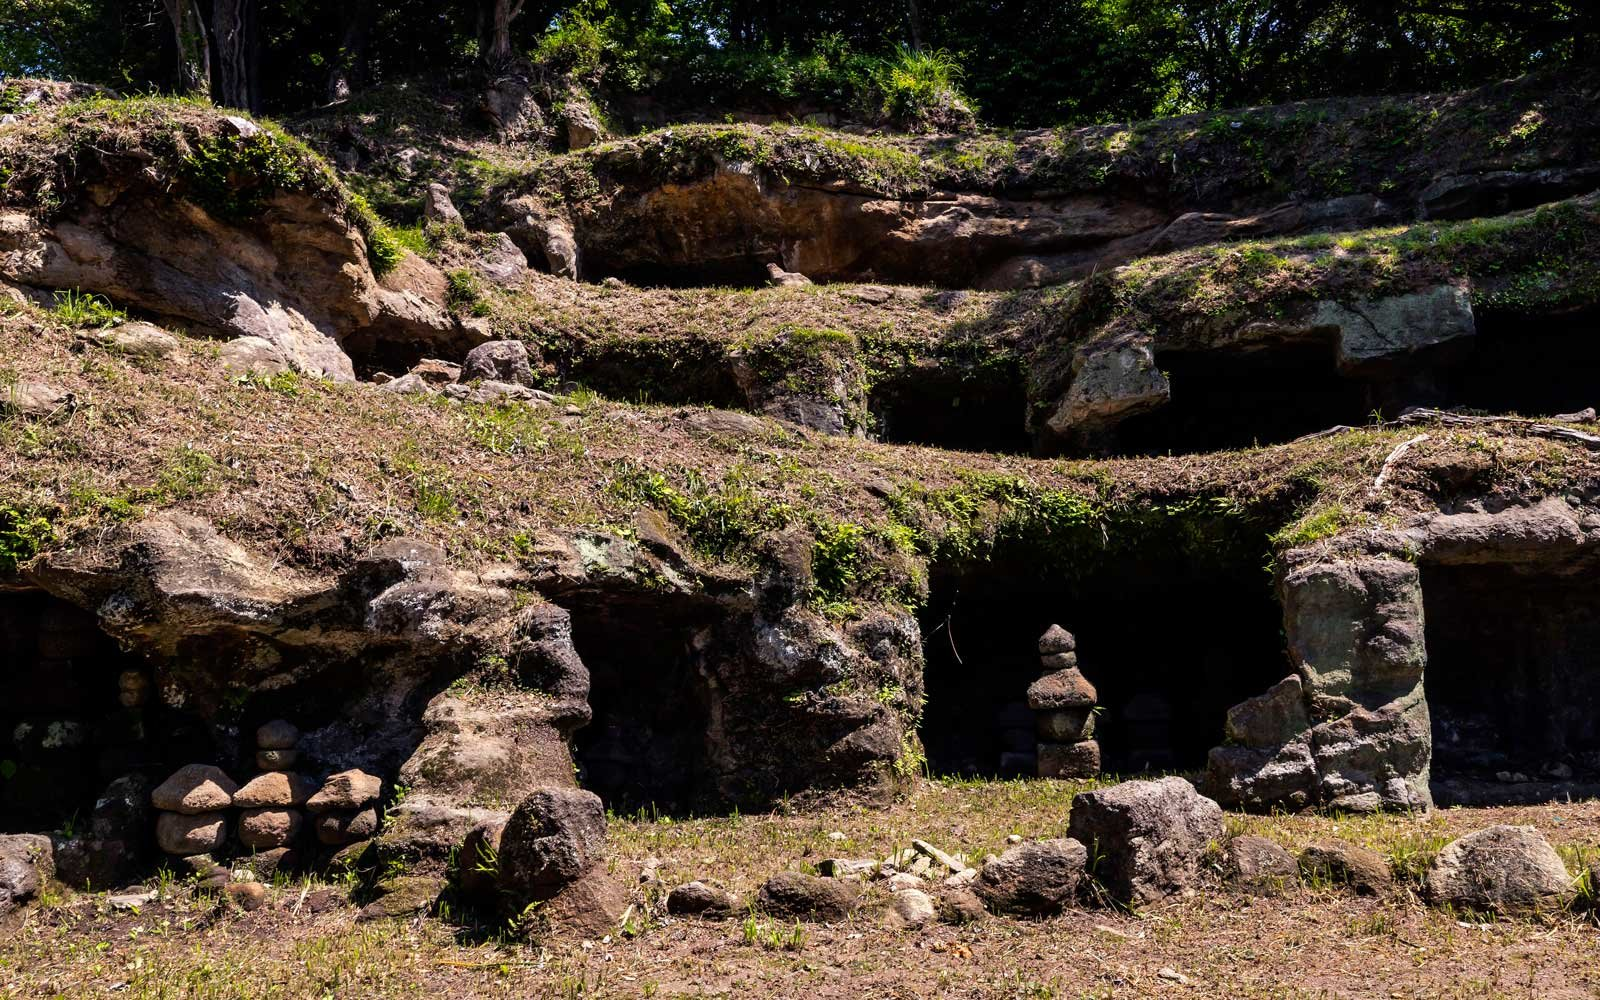 Mandarado Yagura a series of caves sites along an ancient footpath that is now a popular hiking trail that passes through three cuttings known as the Nagoe Kiridoshi.